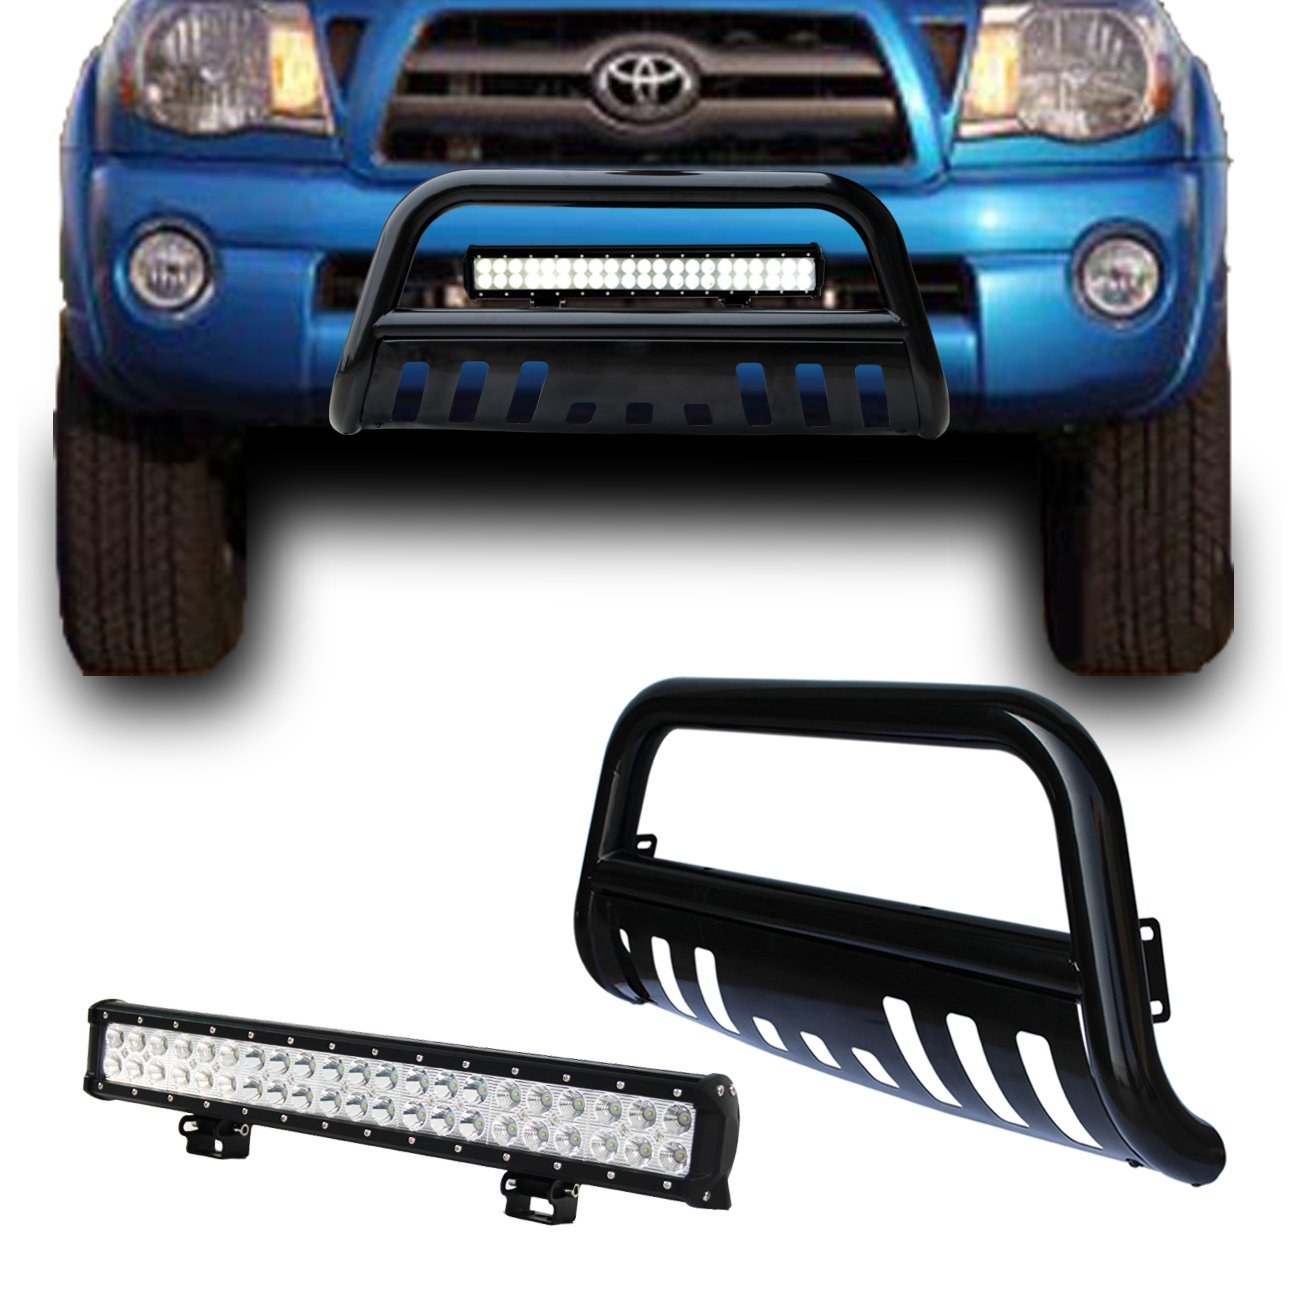 Stainless Front Bumper Grill Grille Guard by IKON MOTORSPORTS Bull Bar Fits 2005-2015 Toyota Tacoma 2006 2007 2008 2009 2010 2011 2012 2013 2014